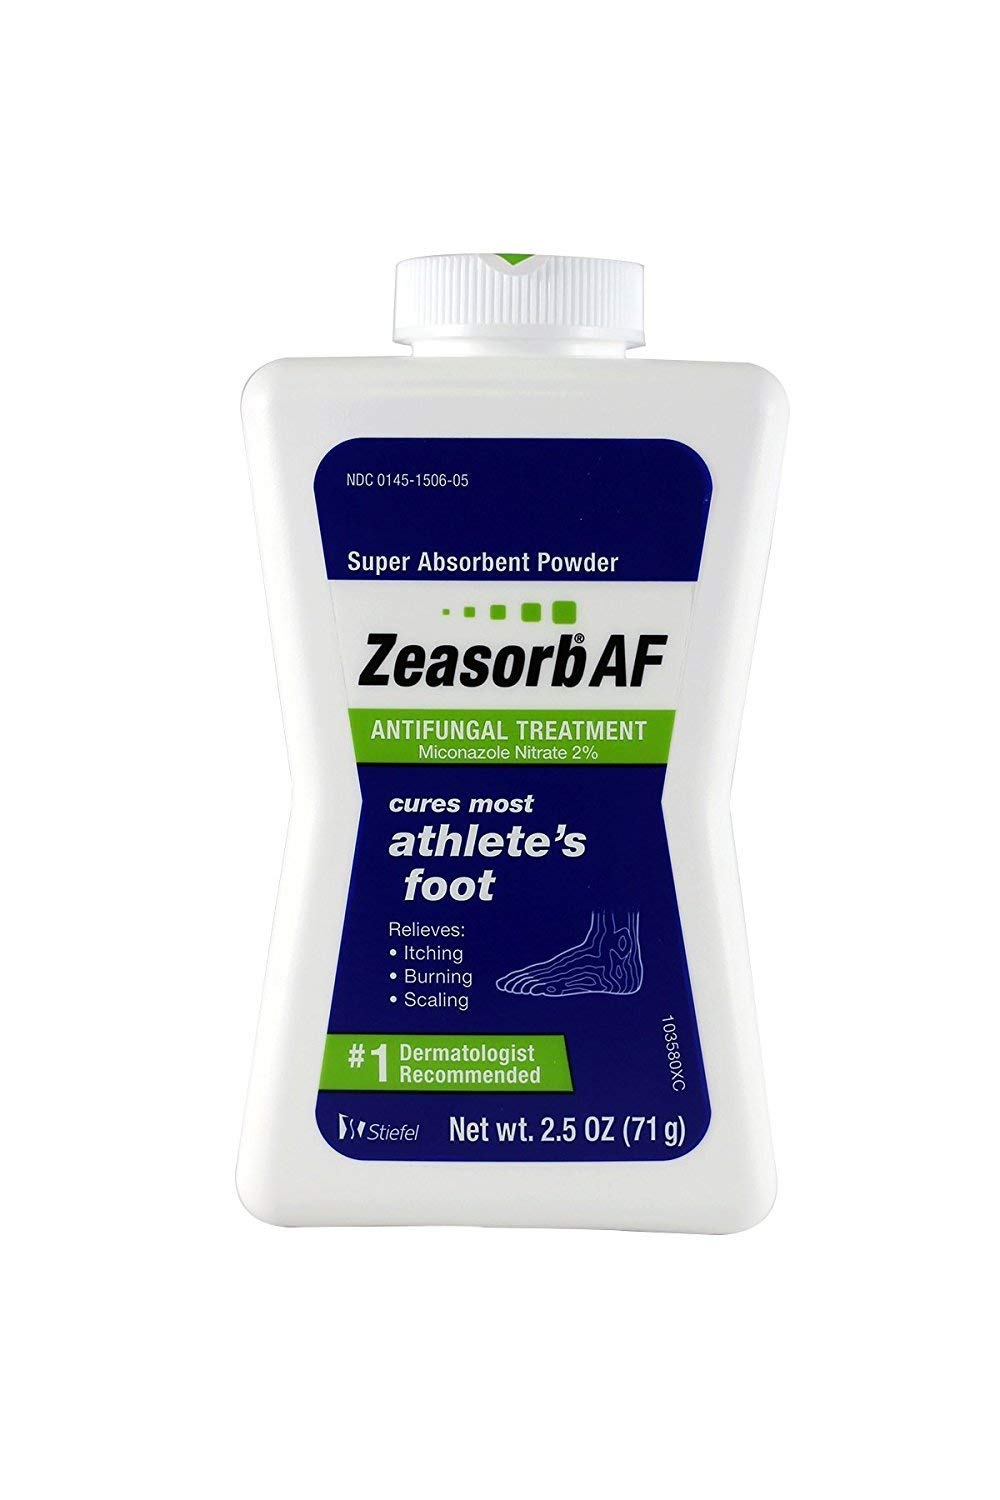 Zeasorb Super Absorbent Powder Antifungal Treatment, Athlete's Foot 2.5 oz (71 g)(Pack of 6) by Stiefel Labs